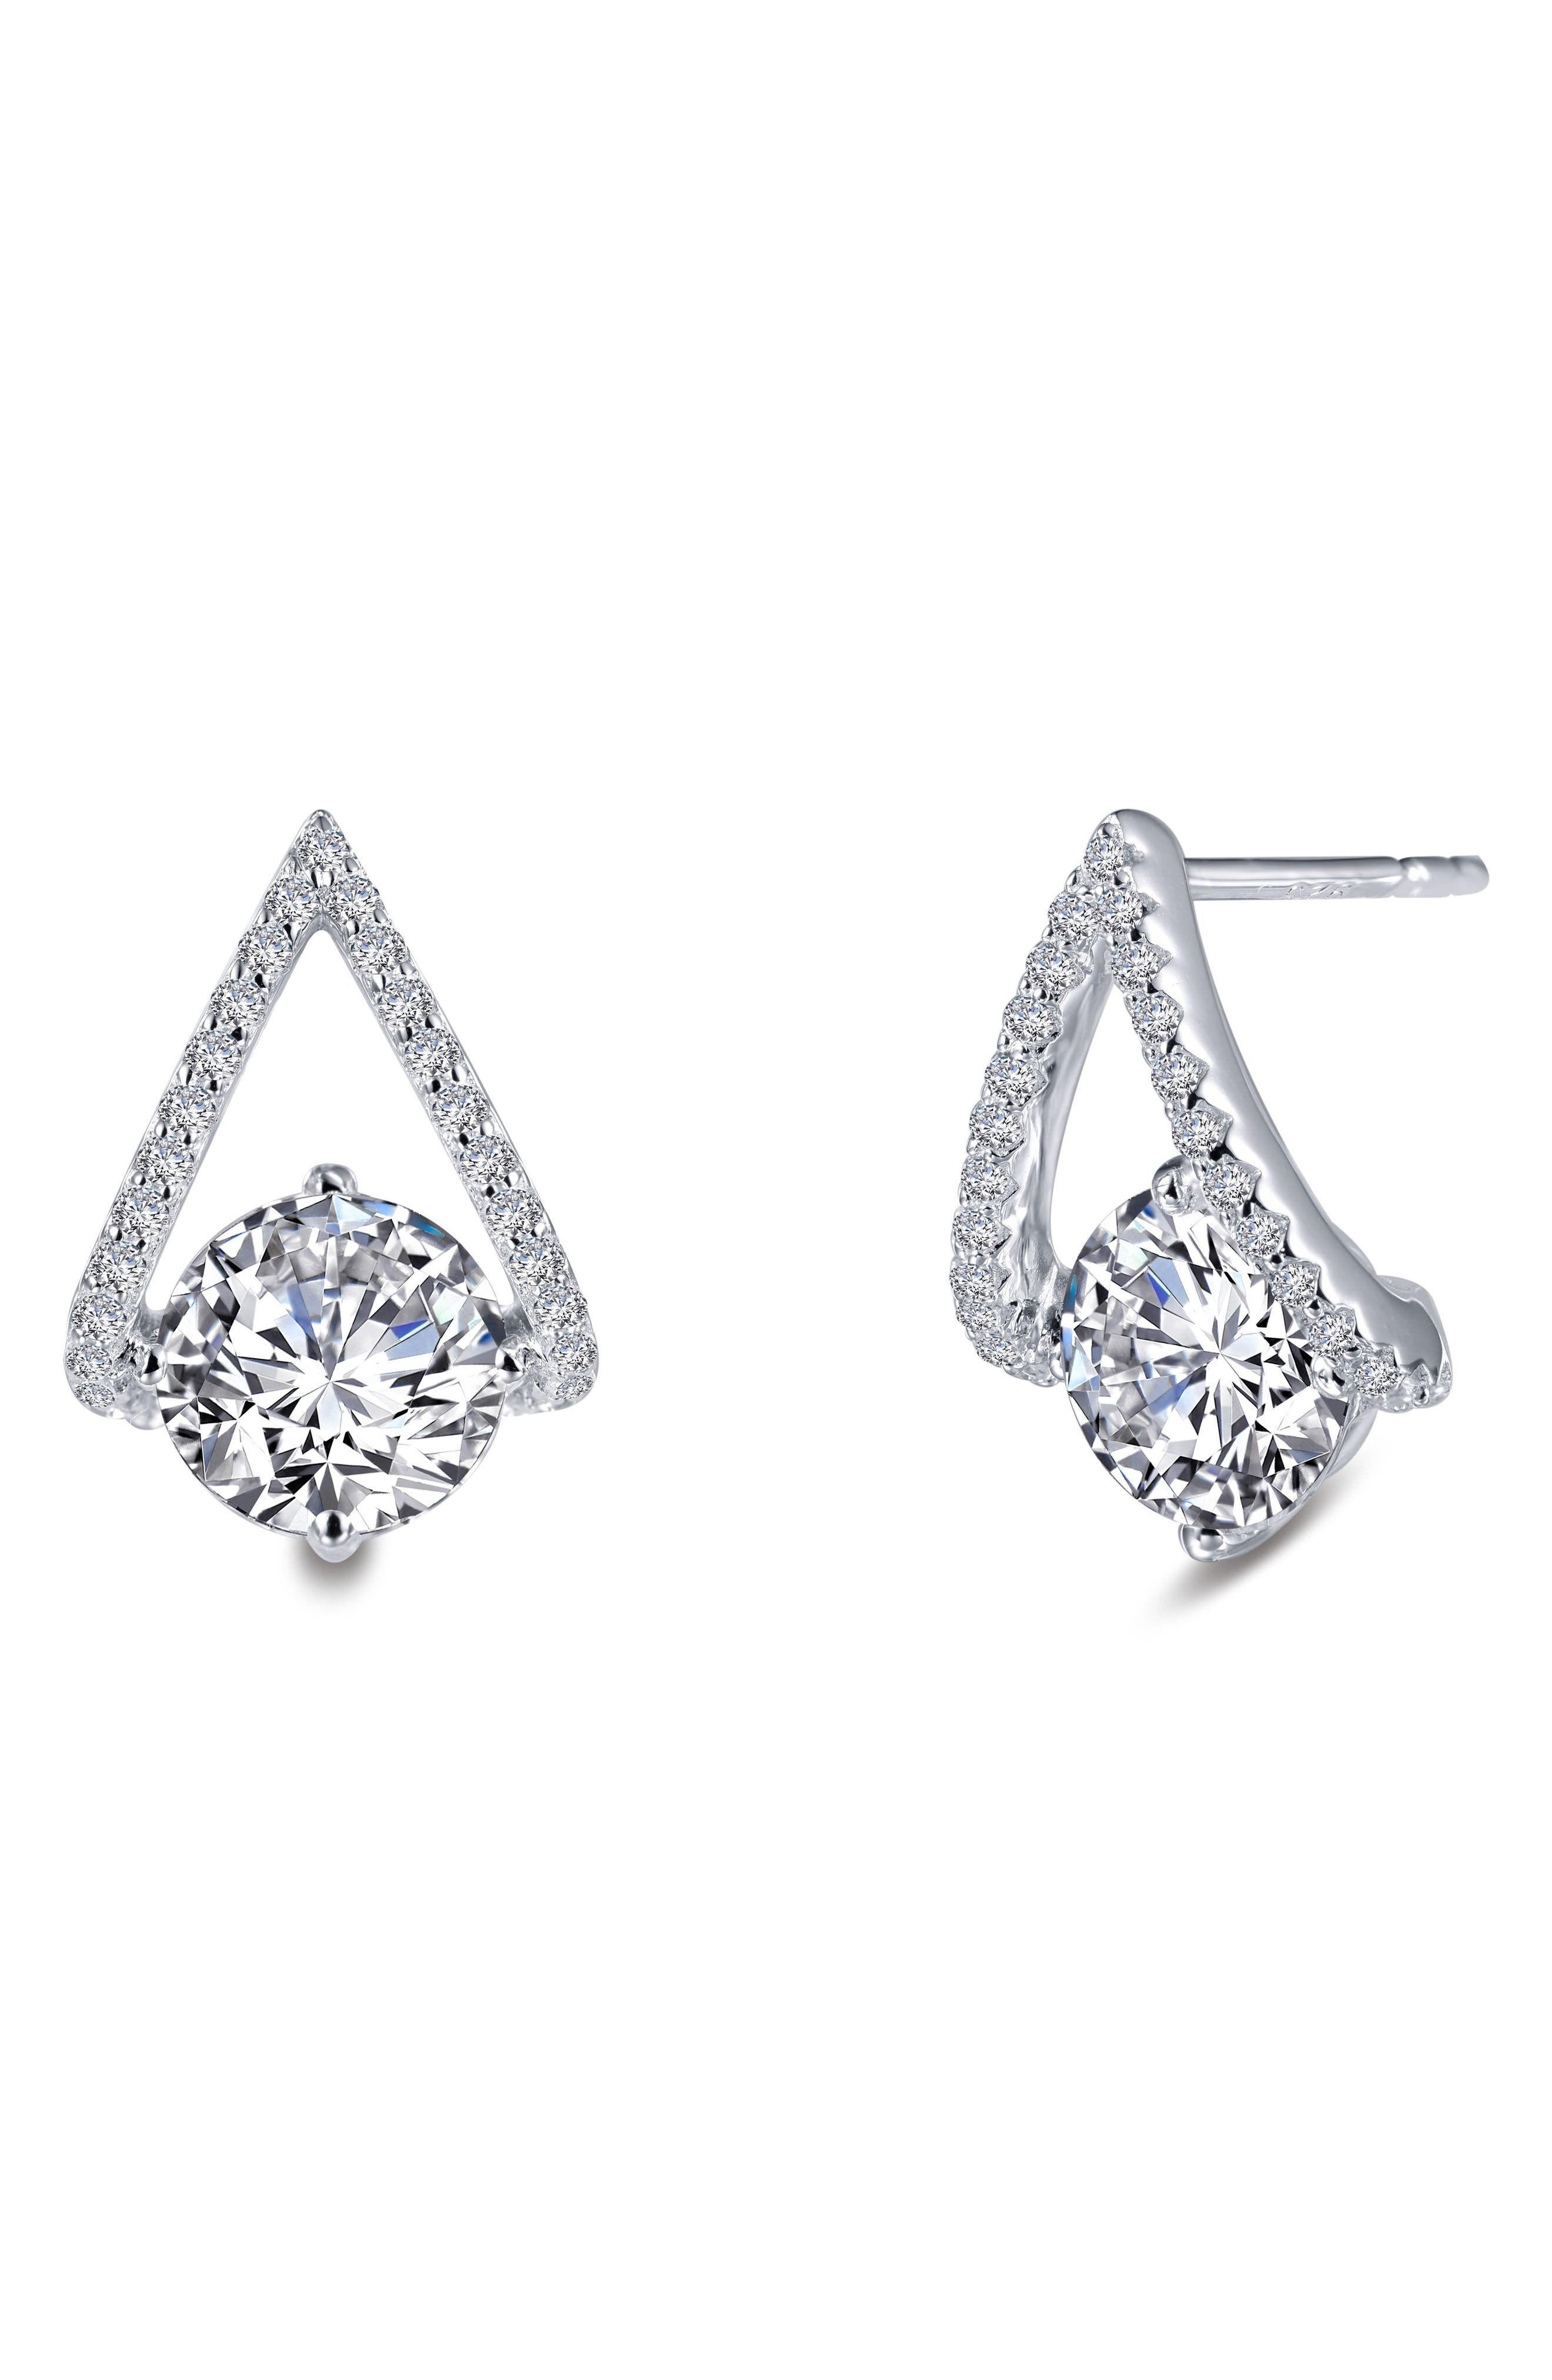 Simulated Diamond Drop Earrings,                             Alternate thumbnail 2, color,                             Silver/ Clear